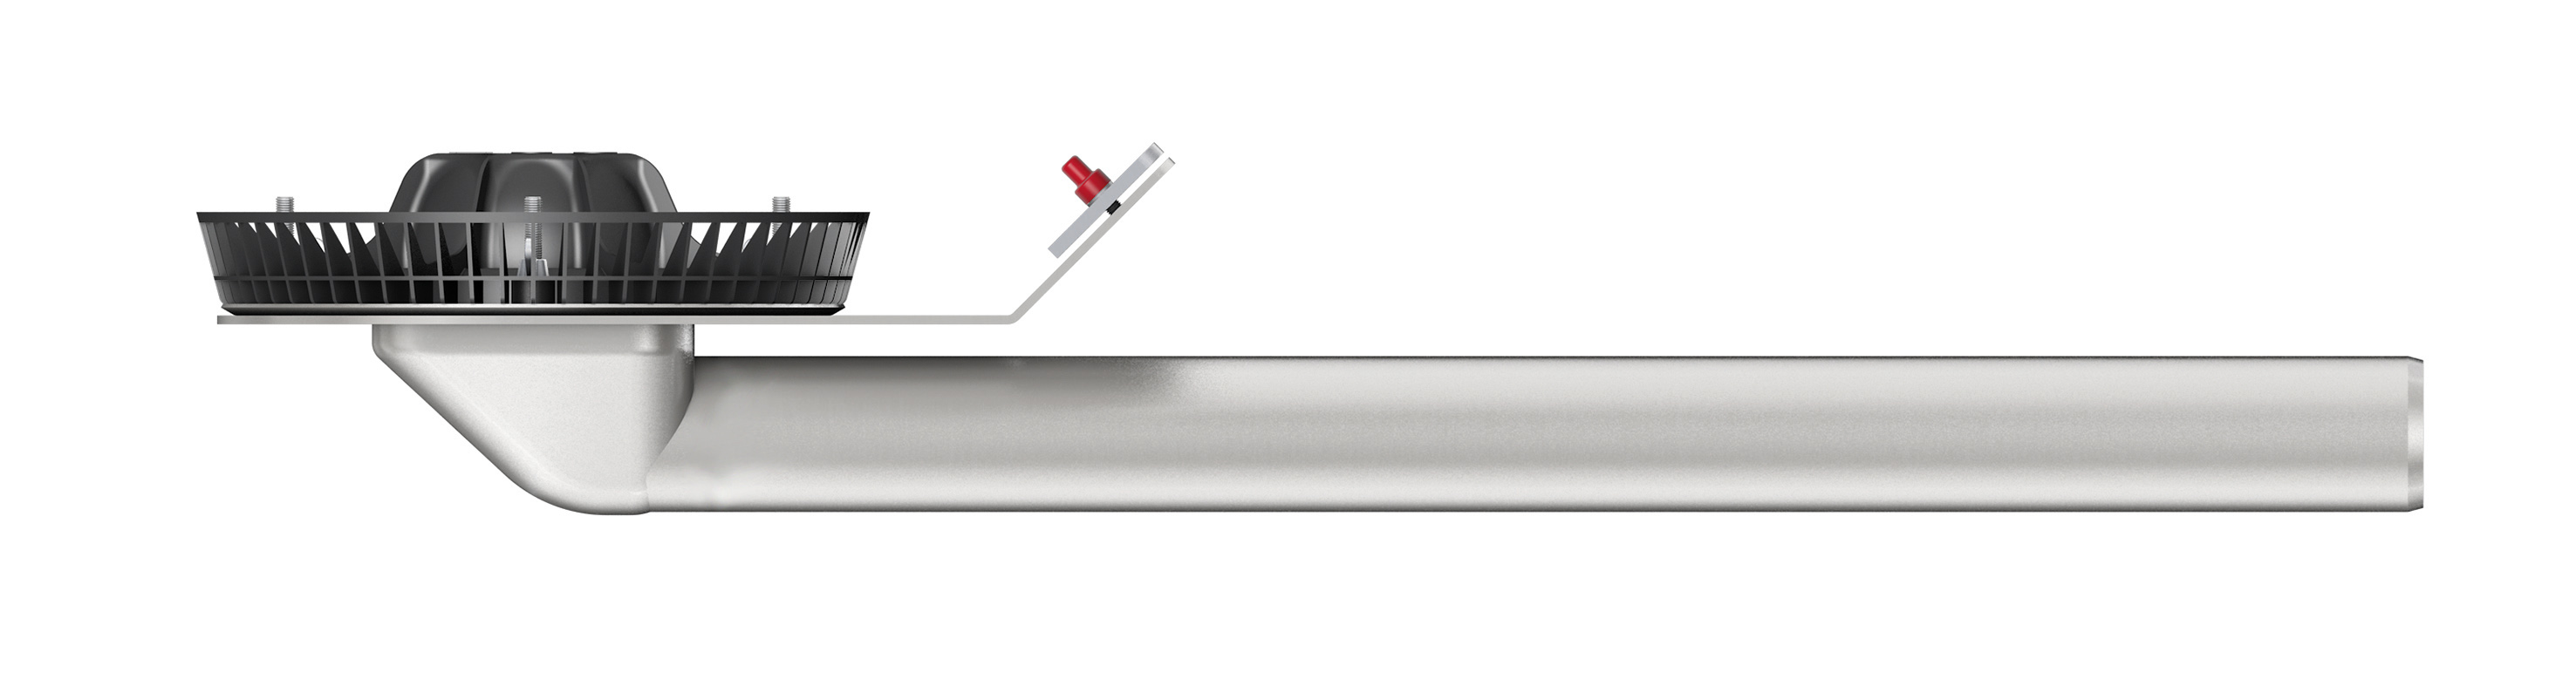 The new ACO Jet parapet drain made of stainless steel